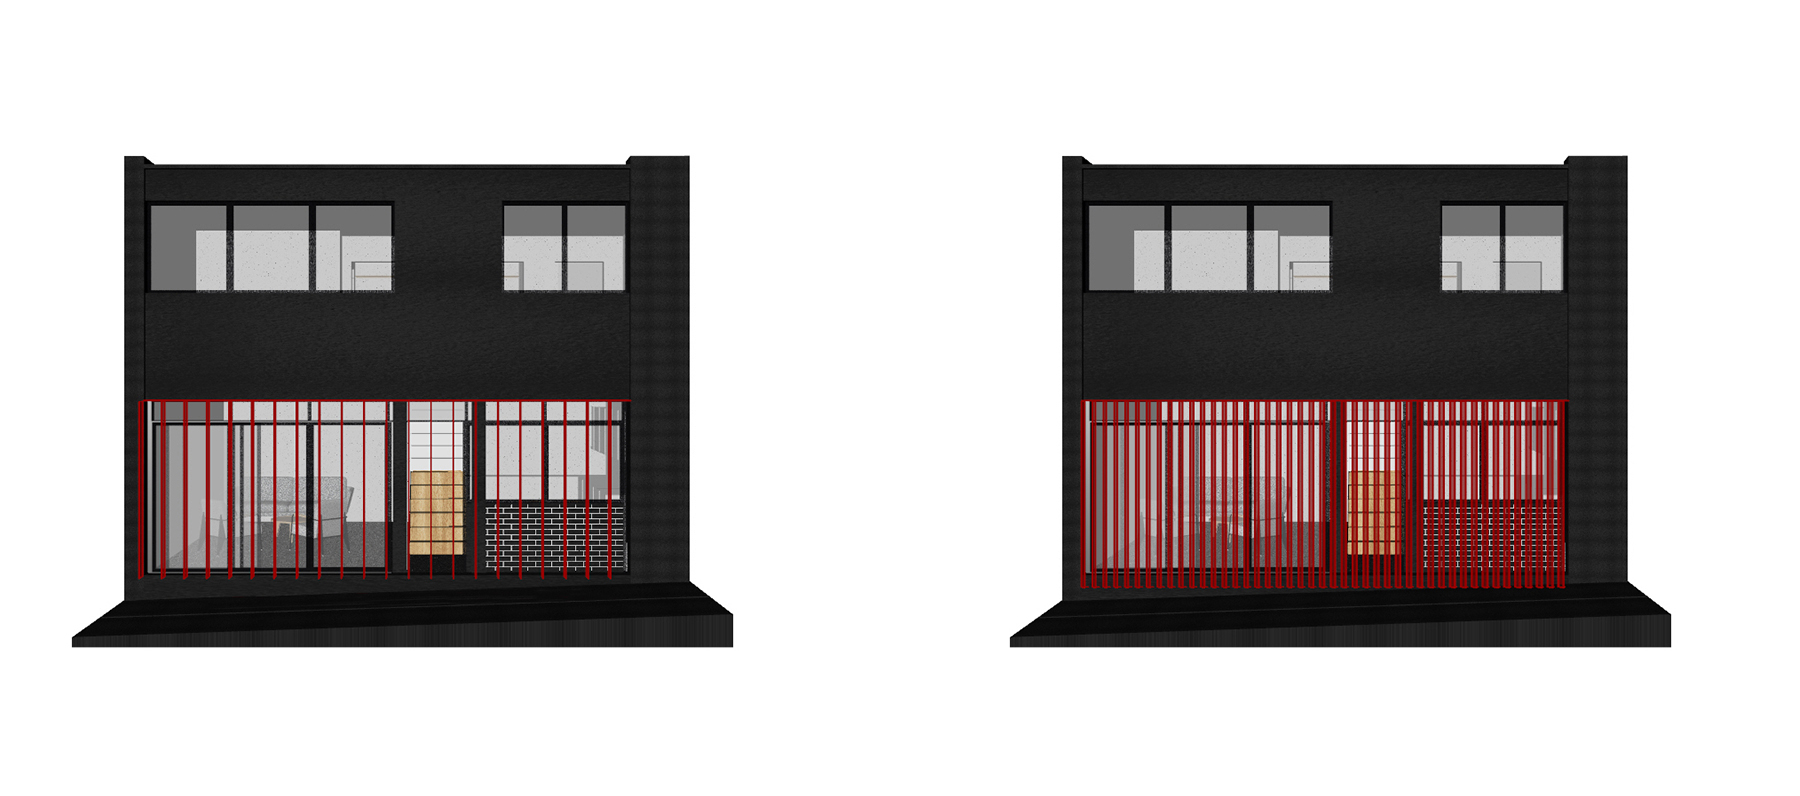 Two design iterations for louvre spacing, depth and orientation in Belsize Park Mews.